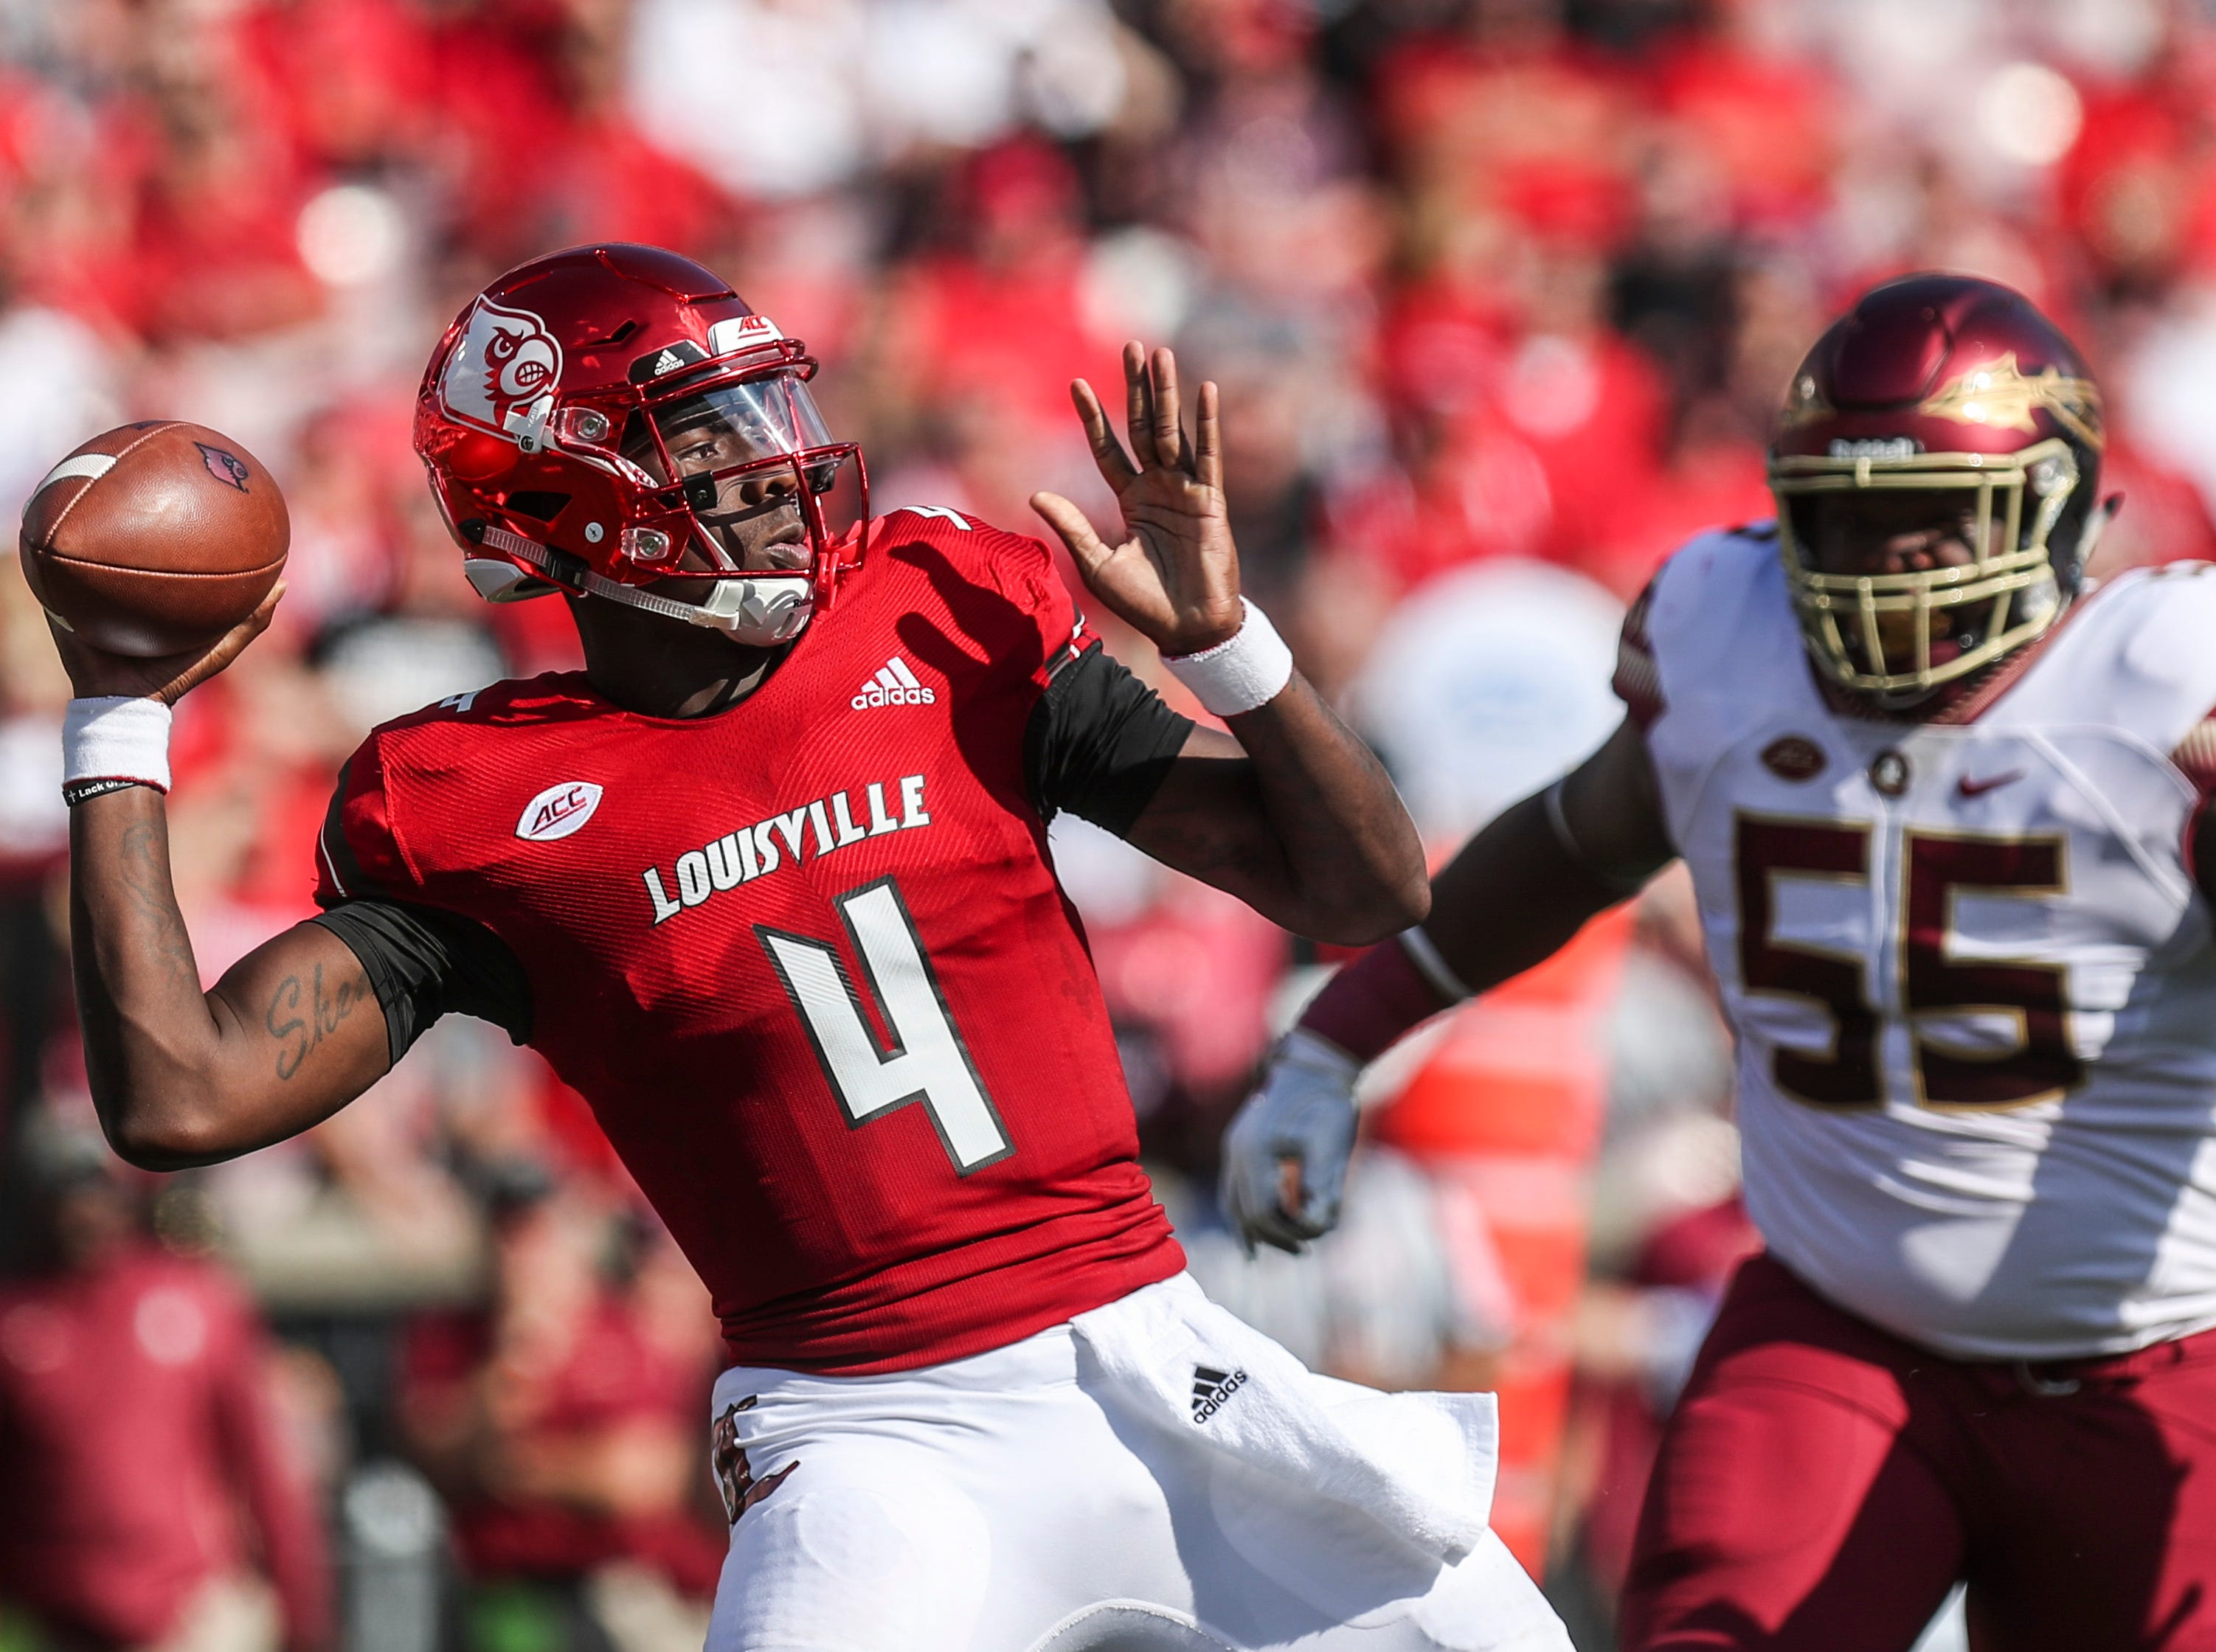 Louisville's Jawon Pass looks to pass in the first half against Florida State Saturday afternoon. Sept. 29, 2018